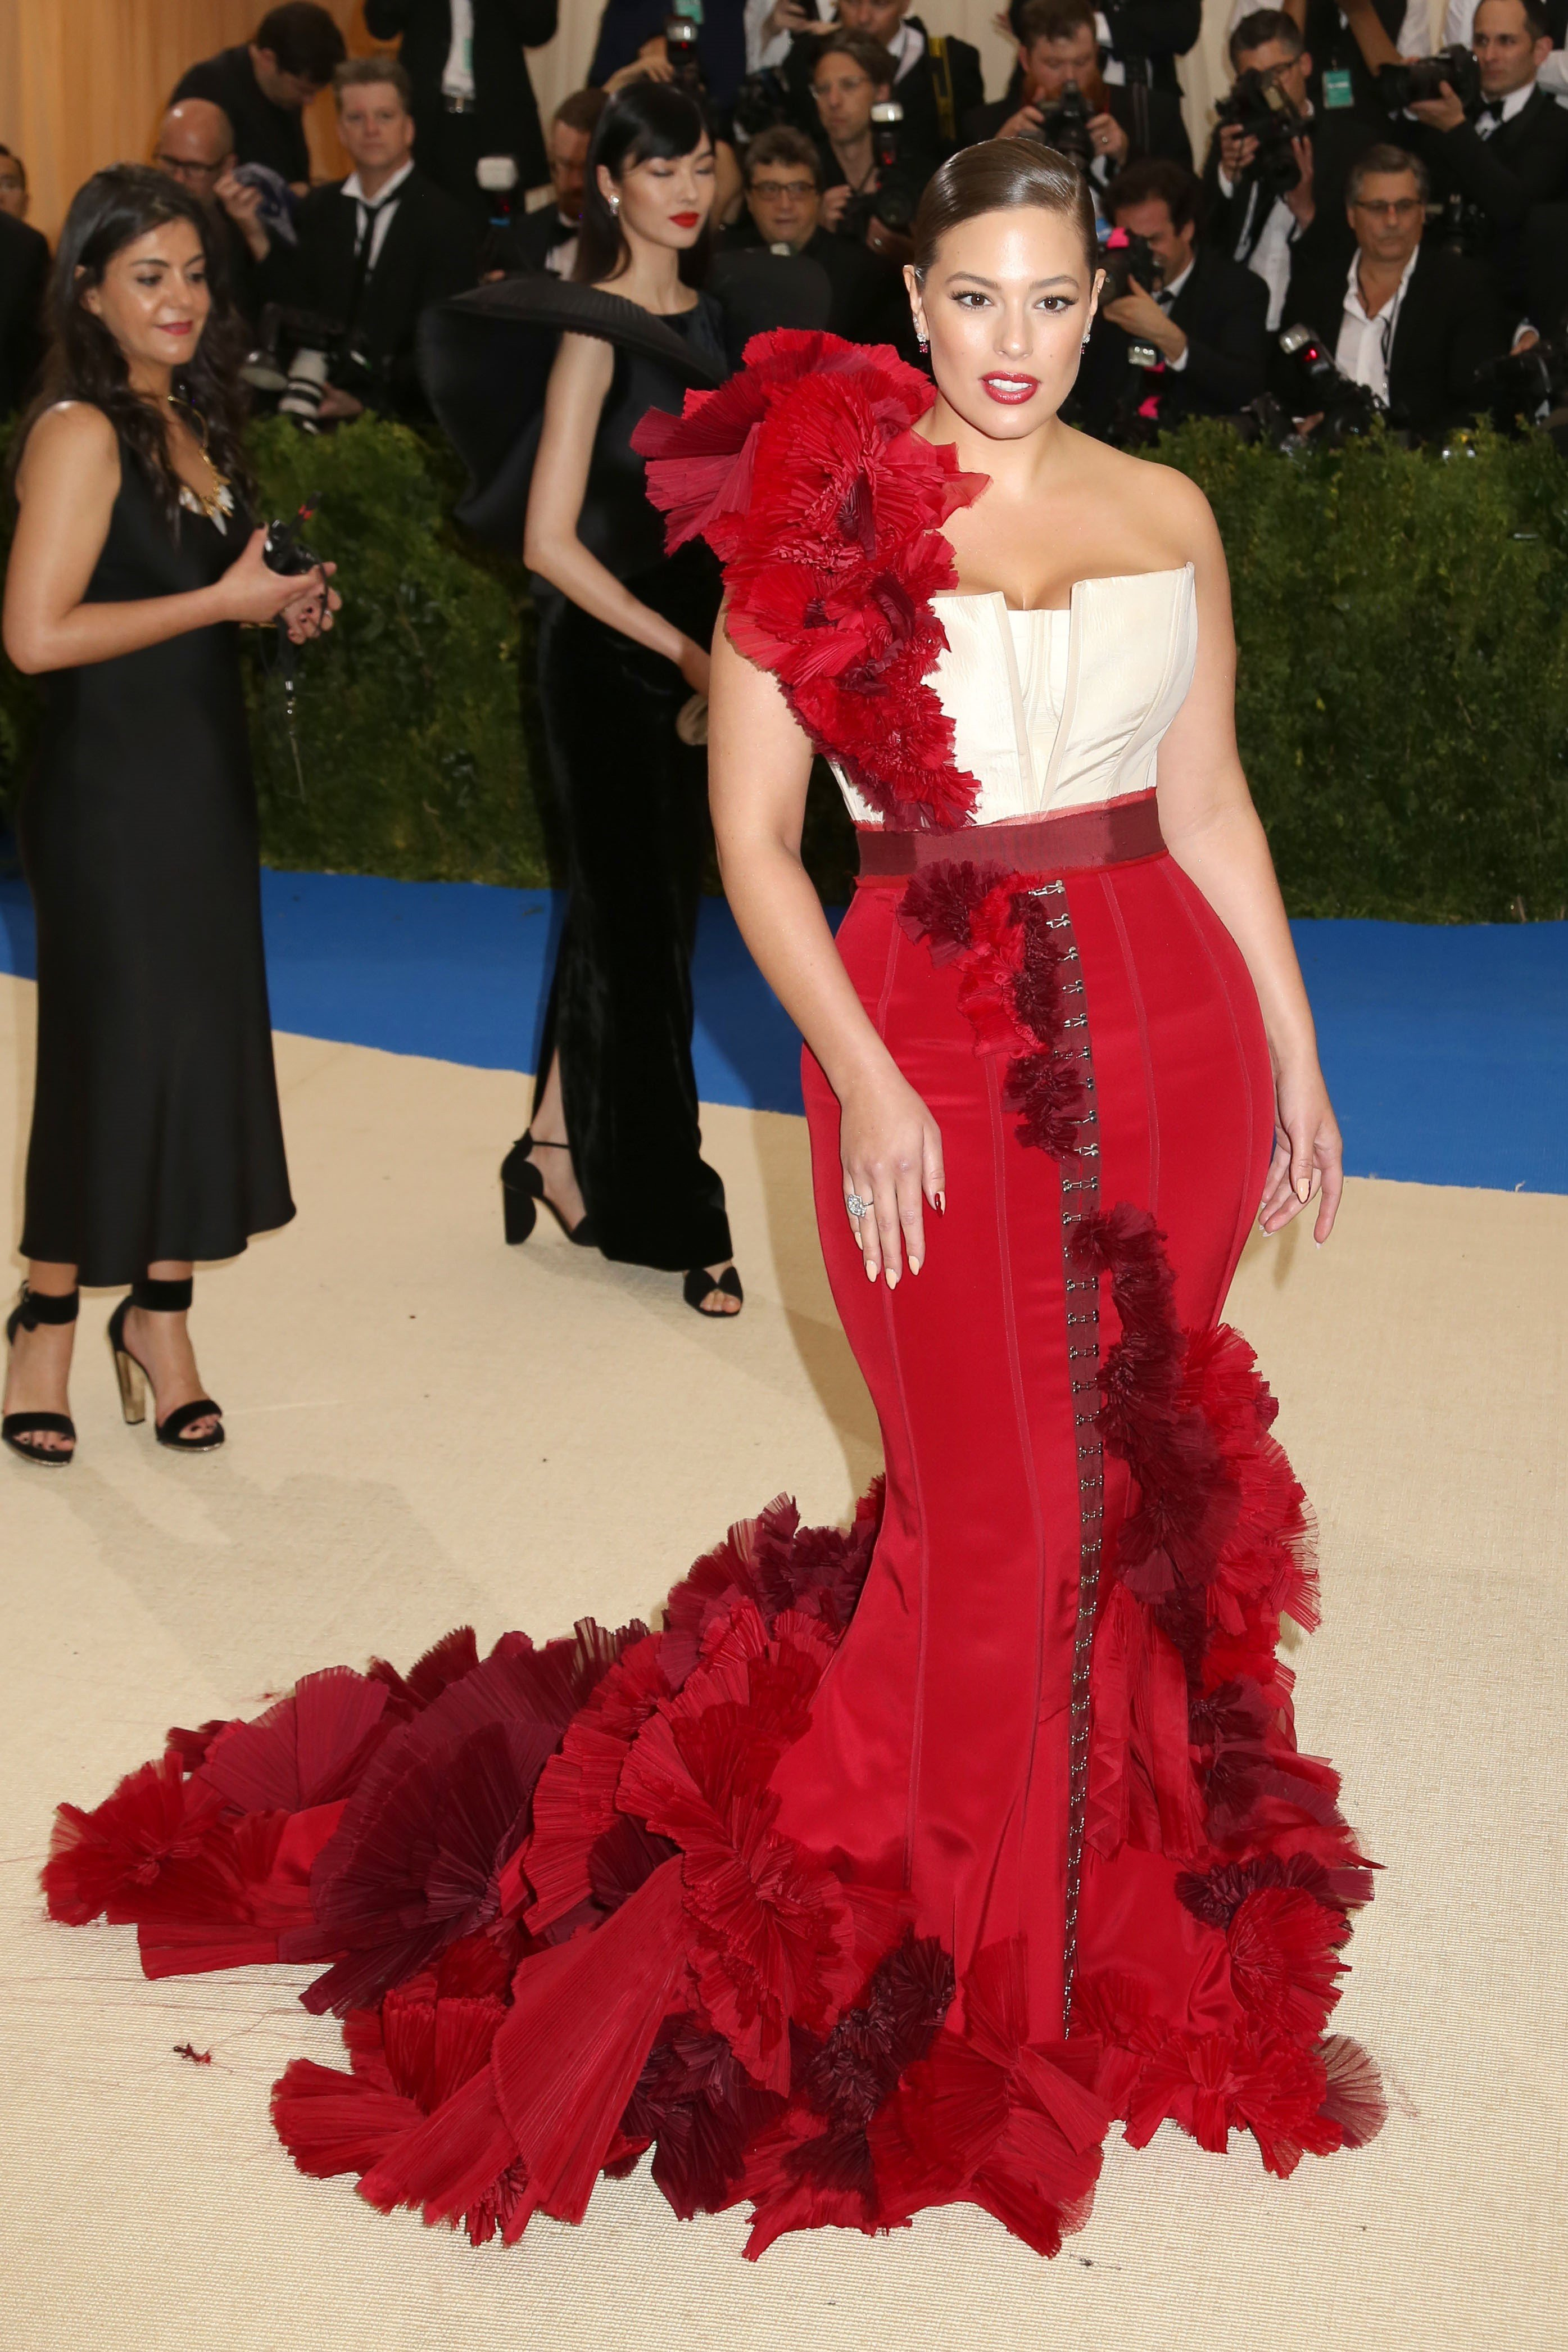 New York, NY  - The 2017 Costume Institute Benefit Rei Kawakubo/Comme des Garcons: Art of the In-Between held at the Metropolitan Museum of Art in NYC.  Pictured: Ashley Graham  Backgrid USA 1 MAY 2017, Image: 330944070, License: Rights-managed, Restrictions: , Model Release: no, Credit line: Profimedia, AKM-GSI